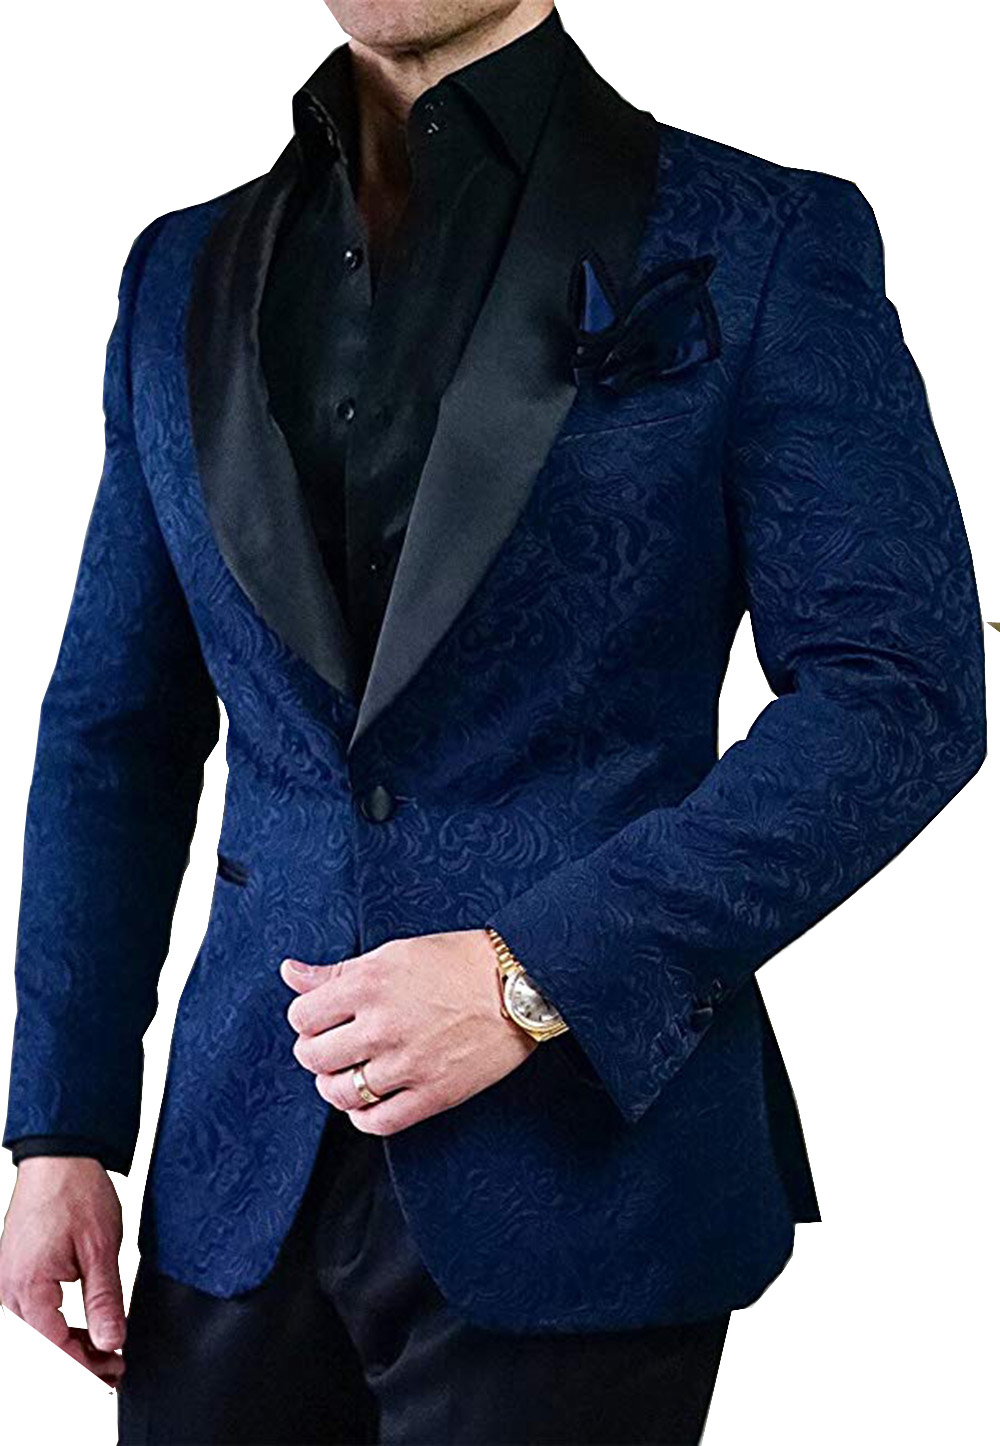 Royal Blue/Navy Men Suits 2 Pieces Shawl Lapel Elegant Floral Jacquard Groomsmen Tuxedos Men Suits For Wedding (Blazer+Pant)